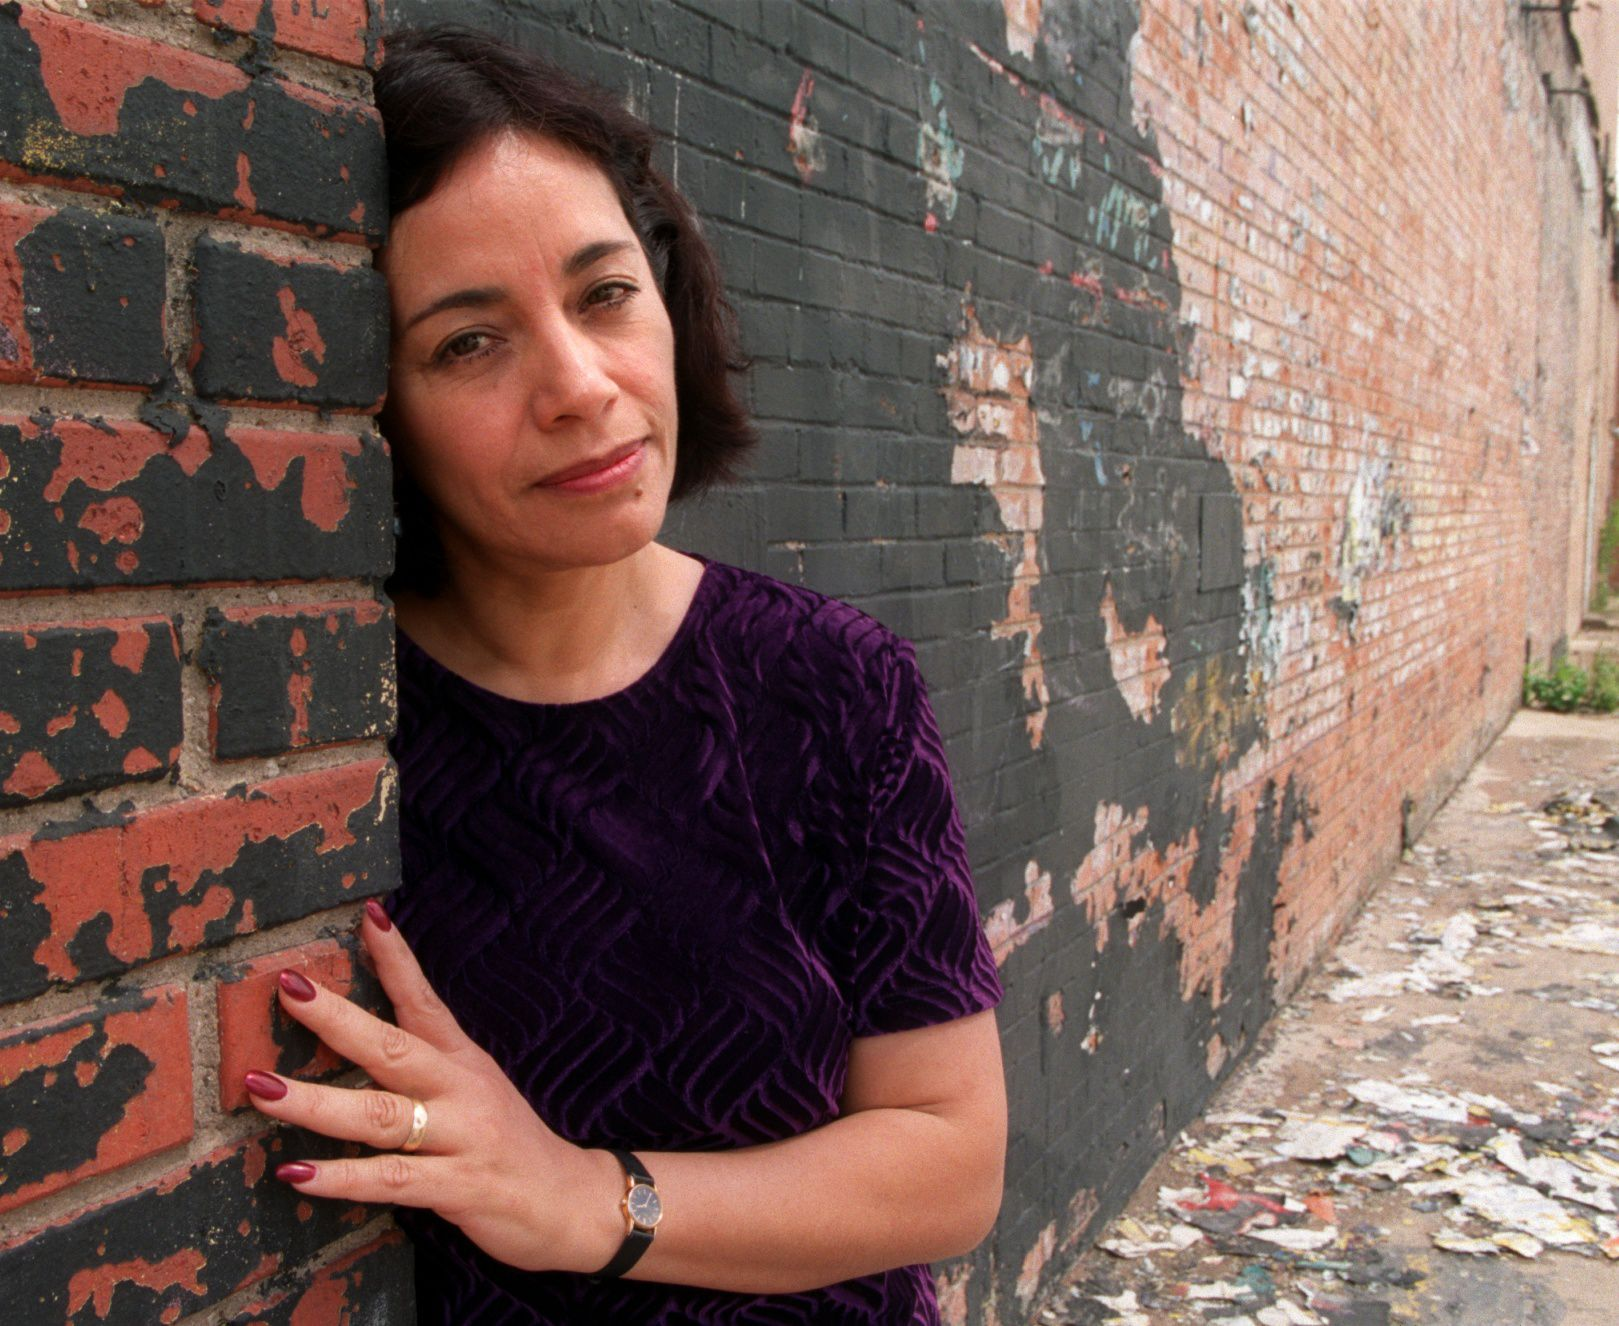 Cora Cardona, co-founder and artistic director of Teatro Dallas, leans on a wall of the company's past location, which was damaged by a fire in November 1998.